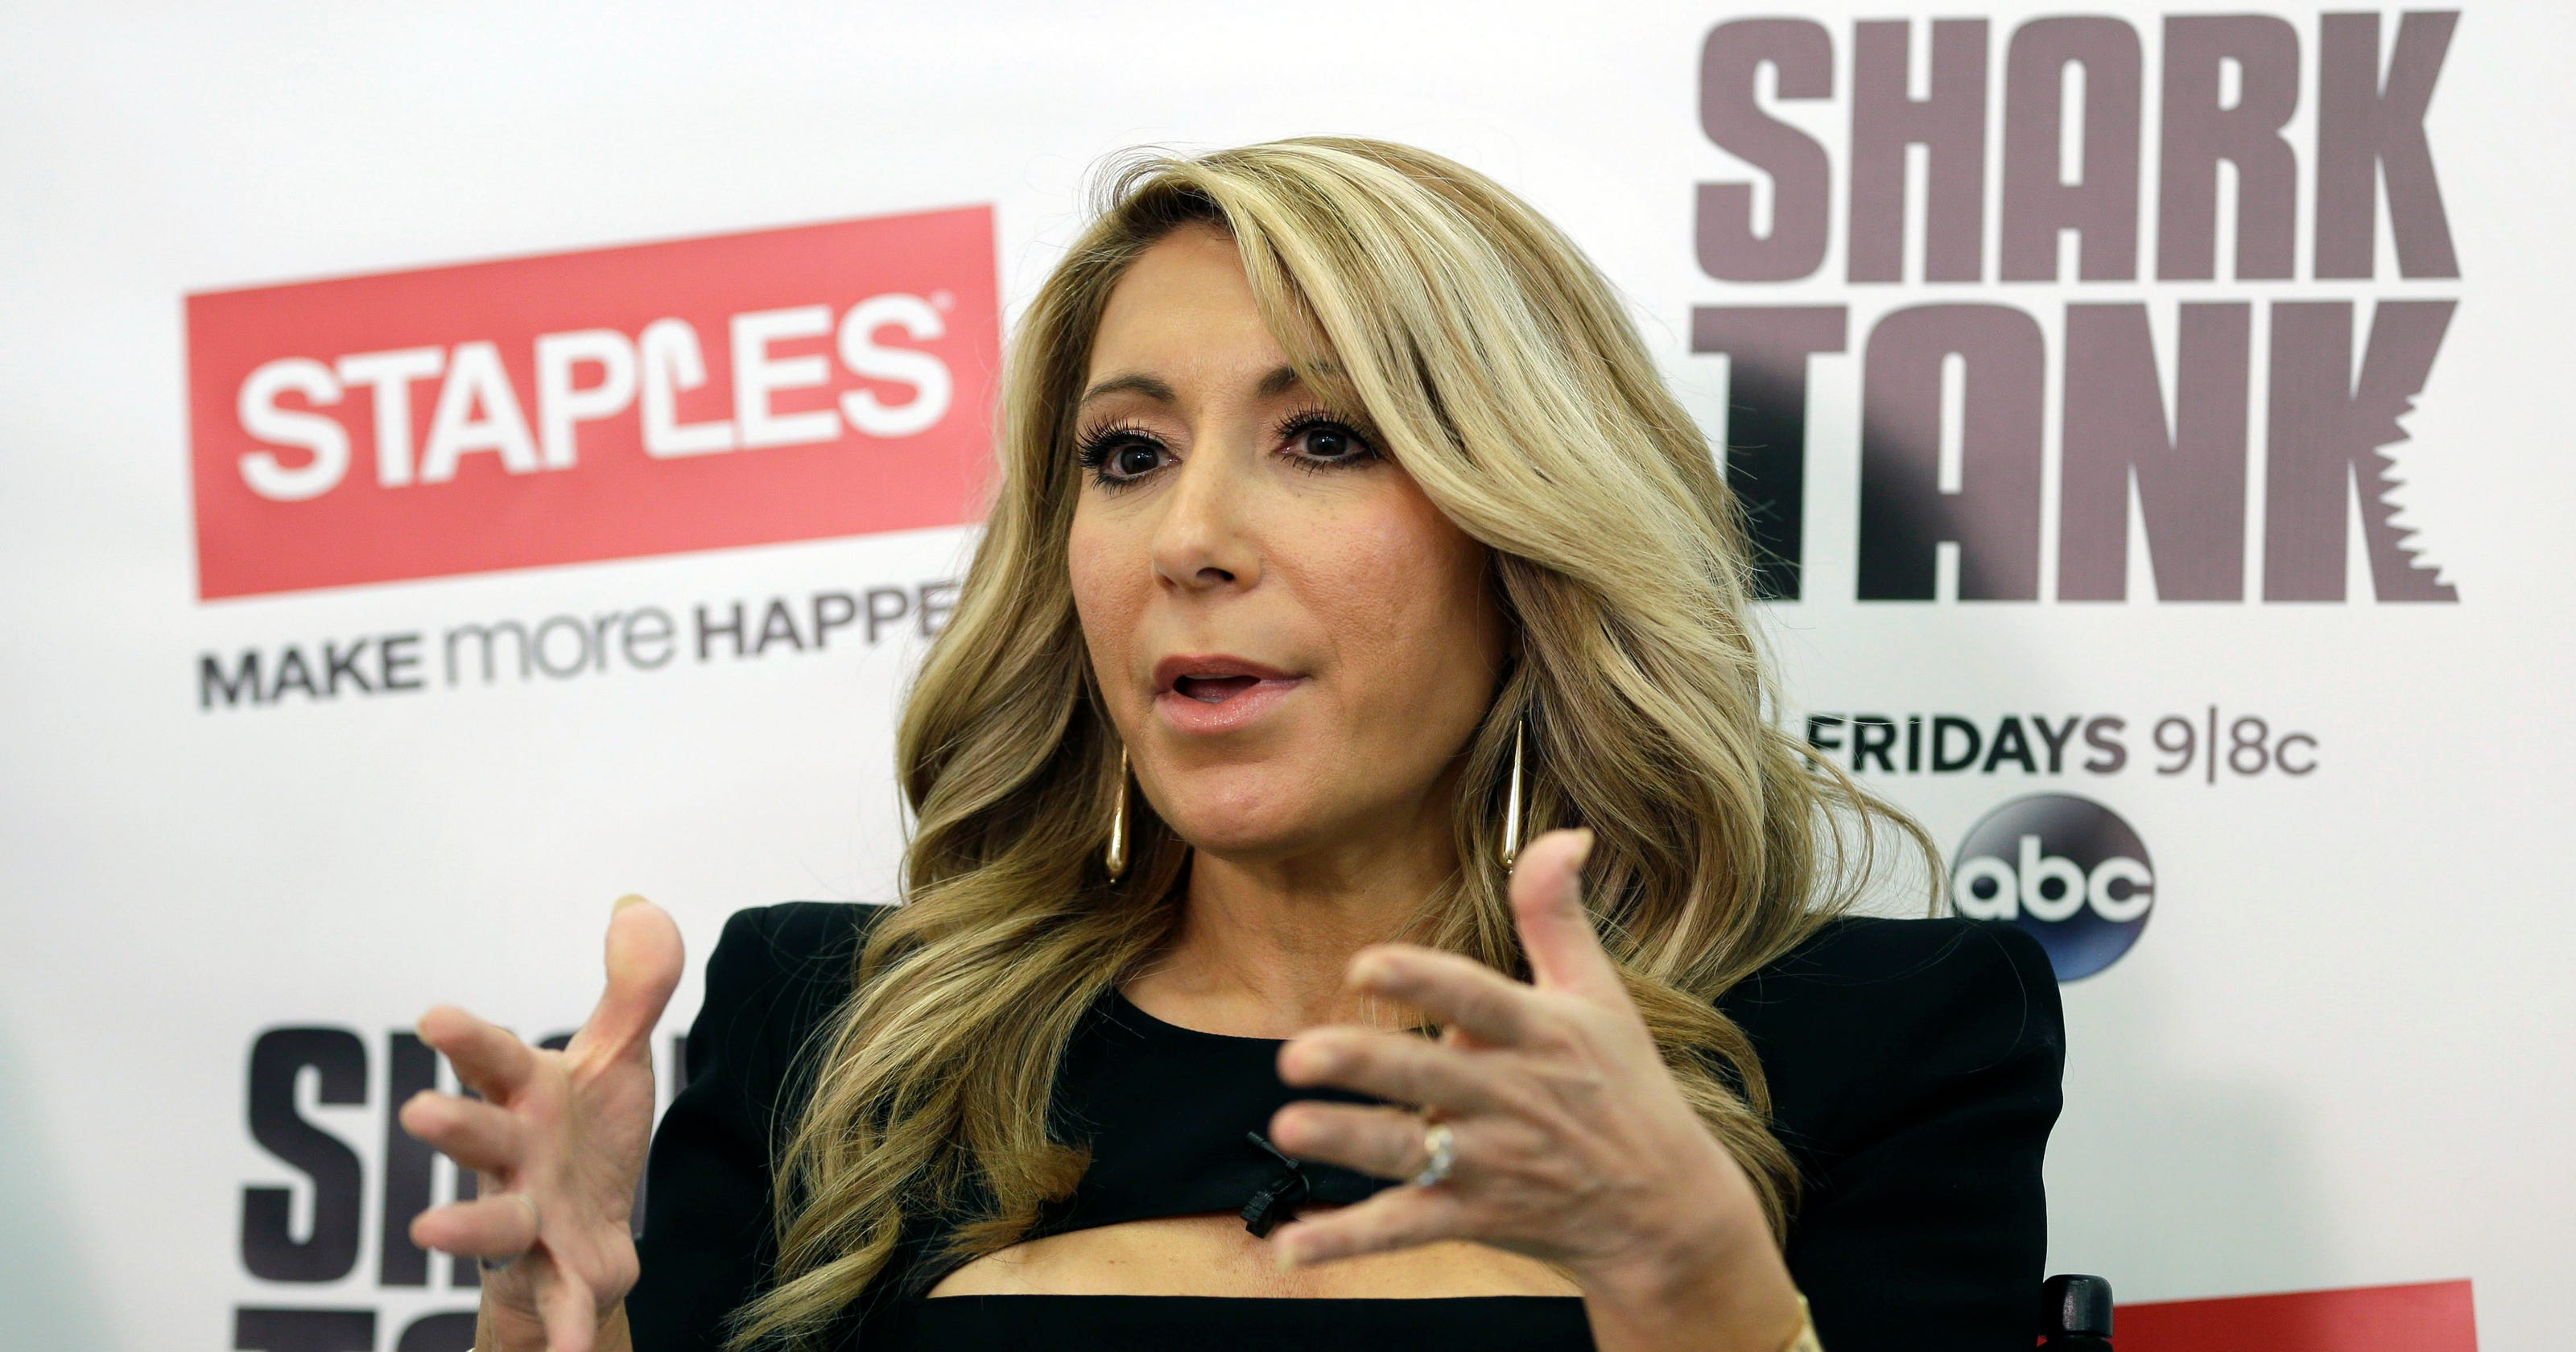 Shark Tank's' Greiner: Tips on how to get on QVC